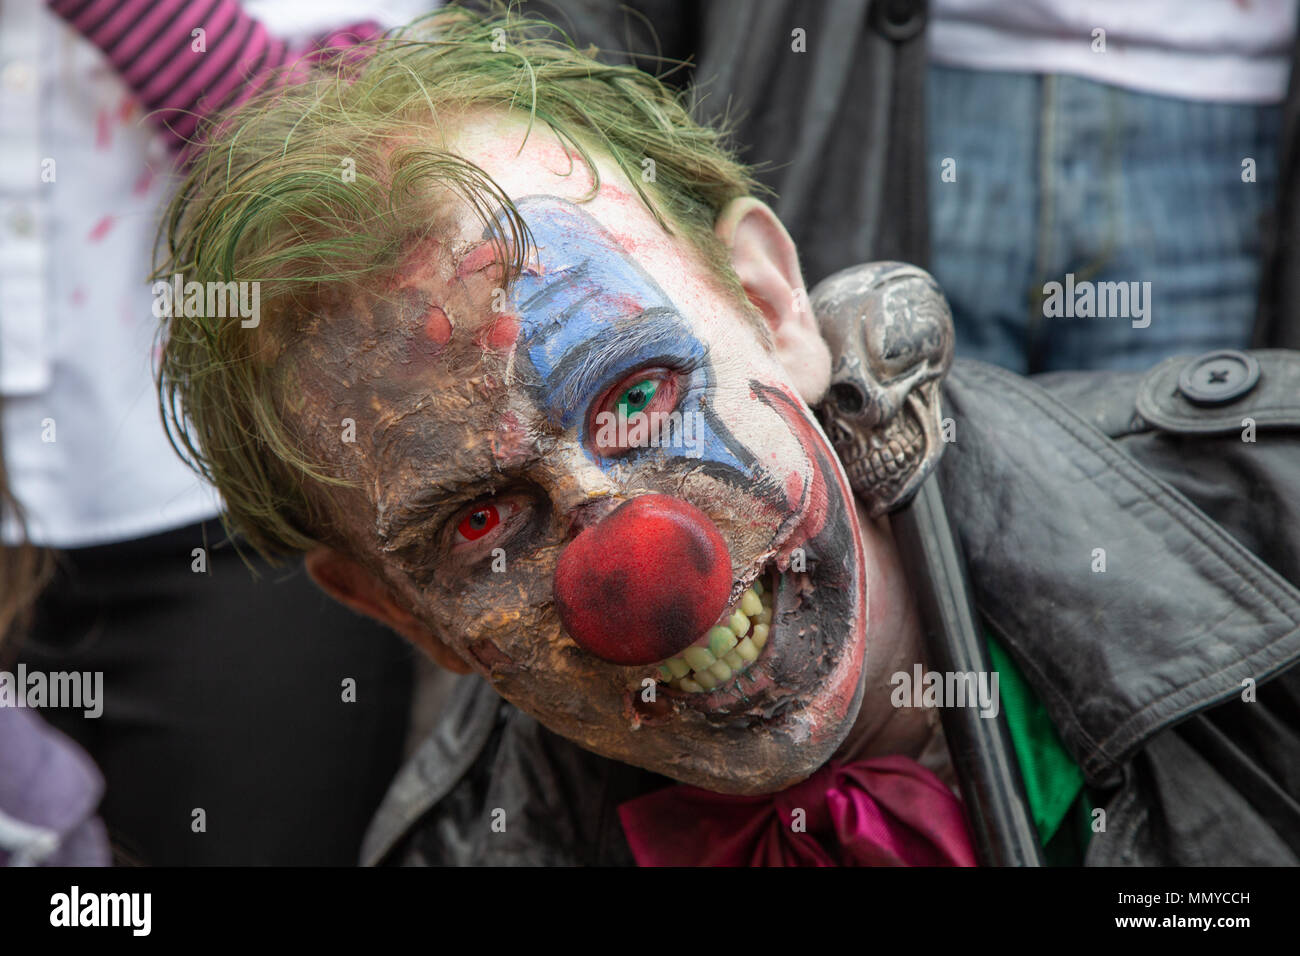 Zombies take part in the annual Southend Pier zombie walk, Southend on Sea, Essex - Stock Image